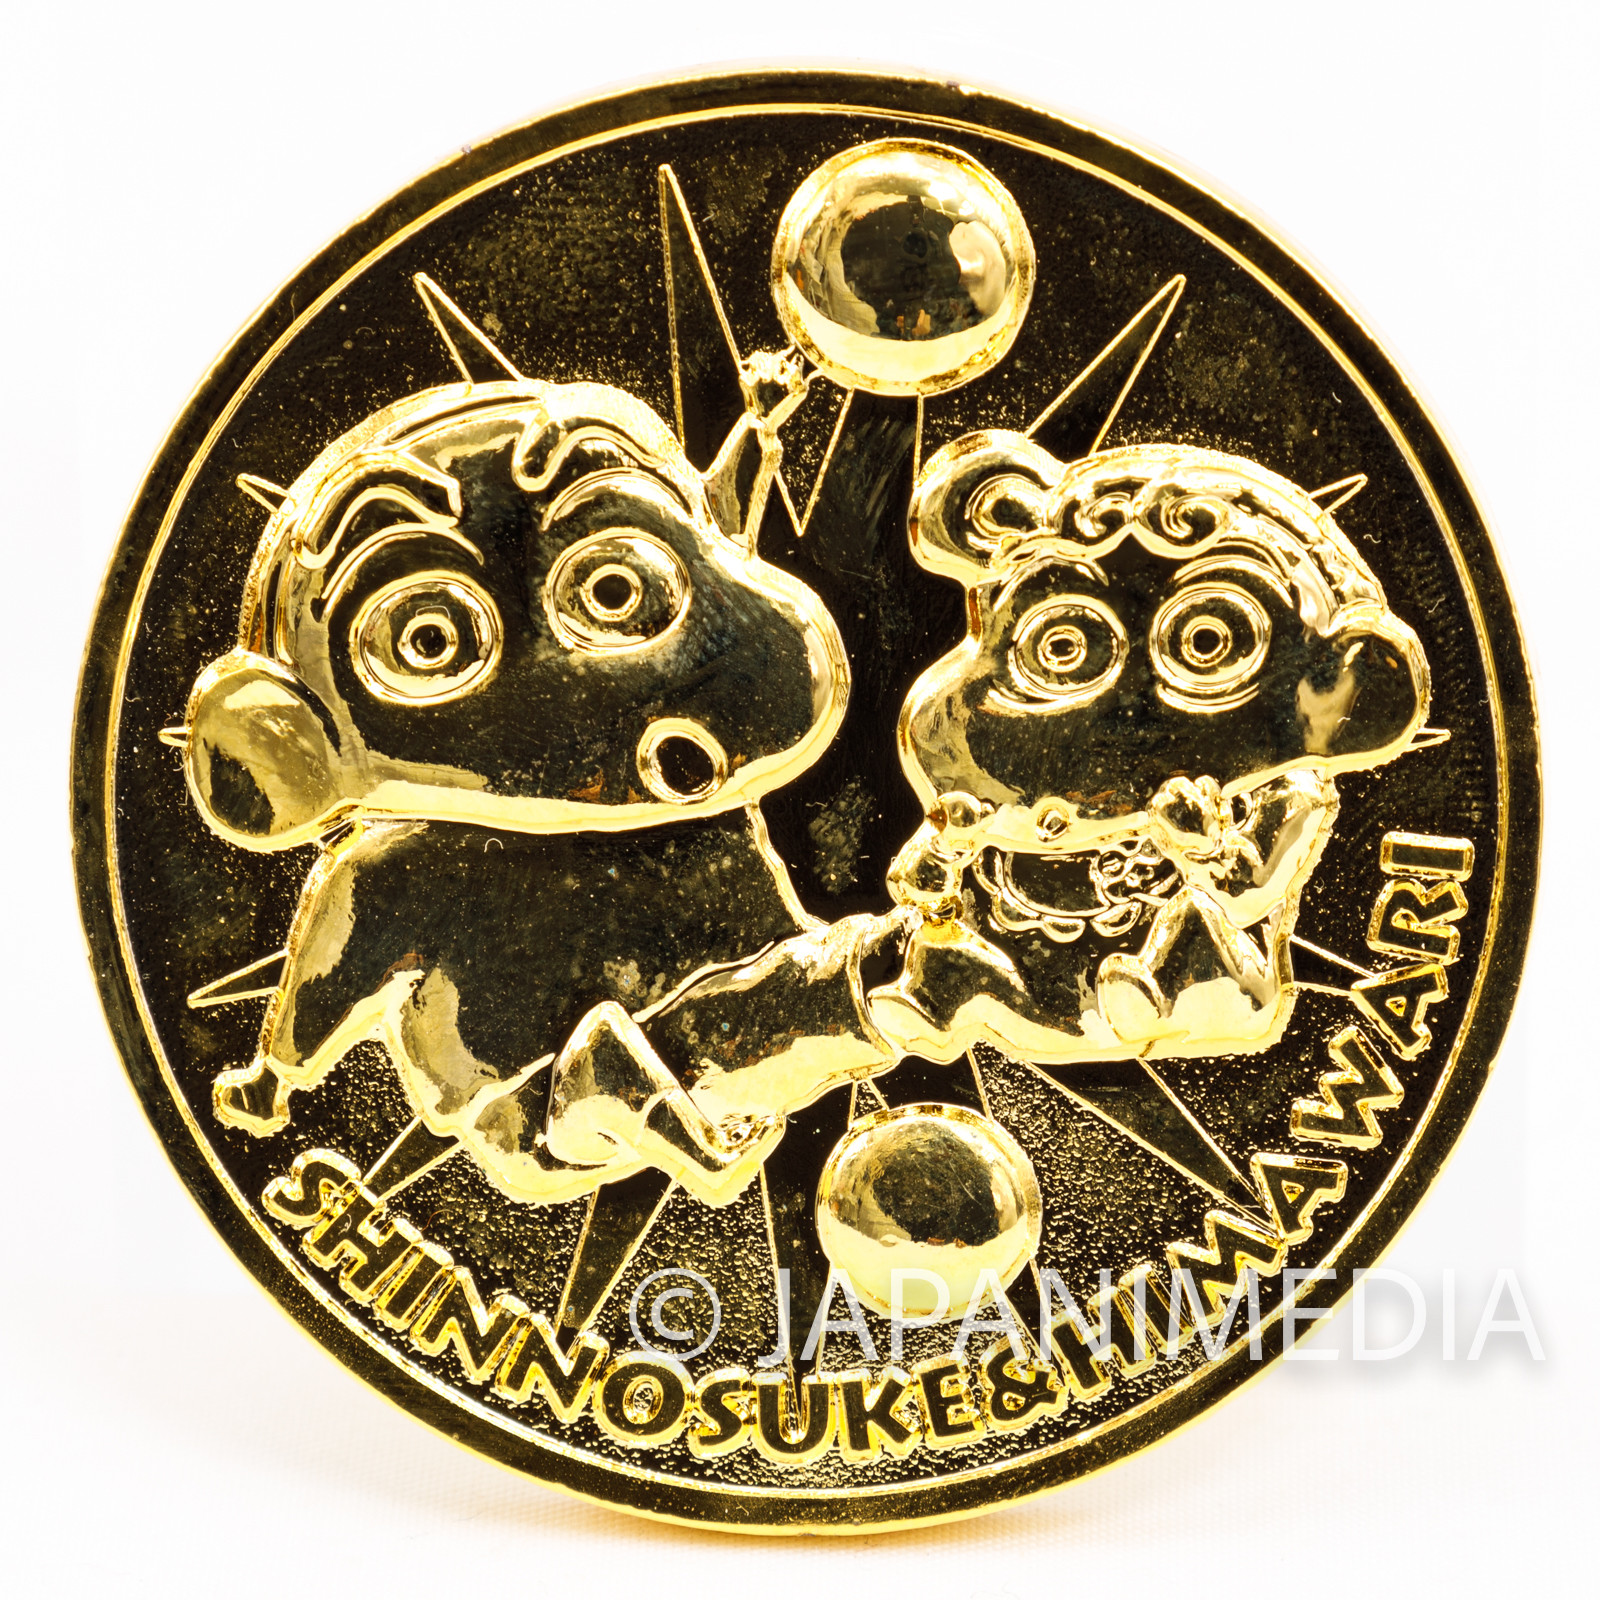 Crayon Shin-chan Ankoku Tamatama Daitsuiseki Movie 1997 Memorial Medal JAPAN